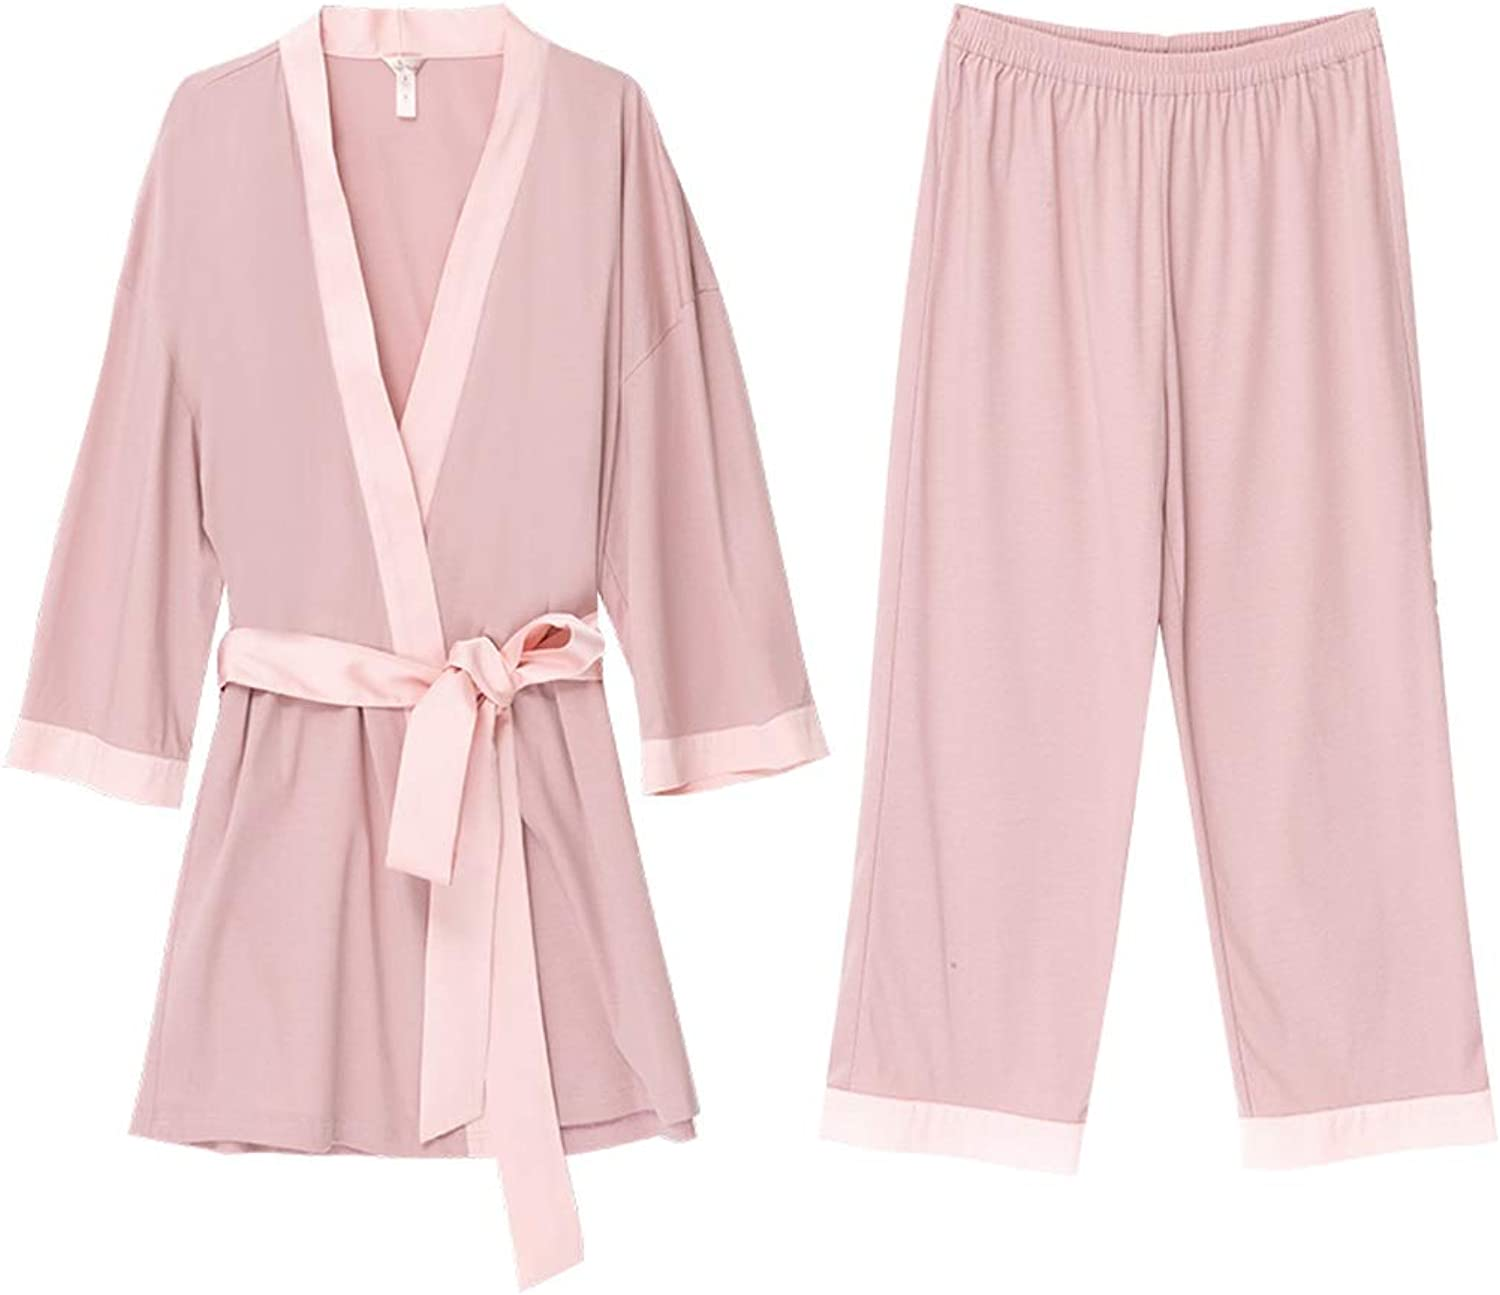 Home Clothes Cotton SevenPoint Sleeve Pajamas Set Lace Nightgown Home Service (color   Pink, Size   L)